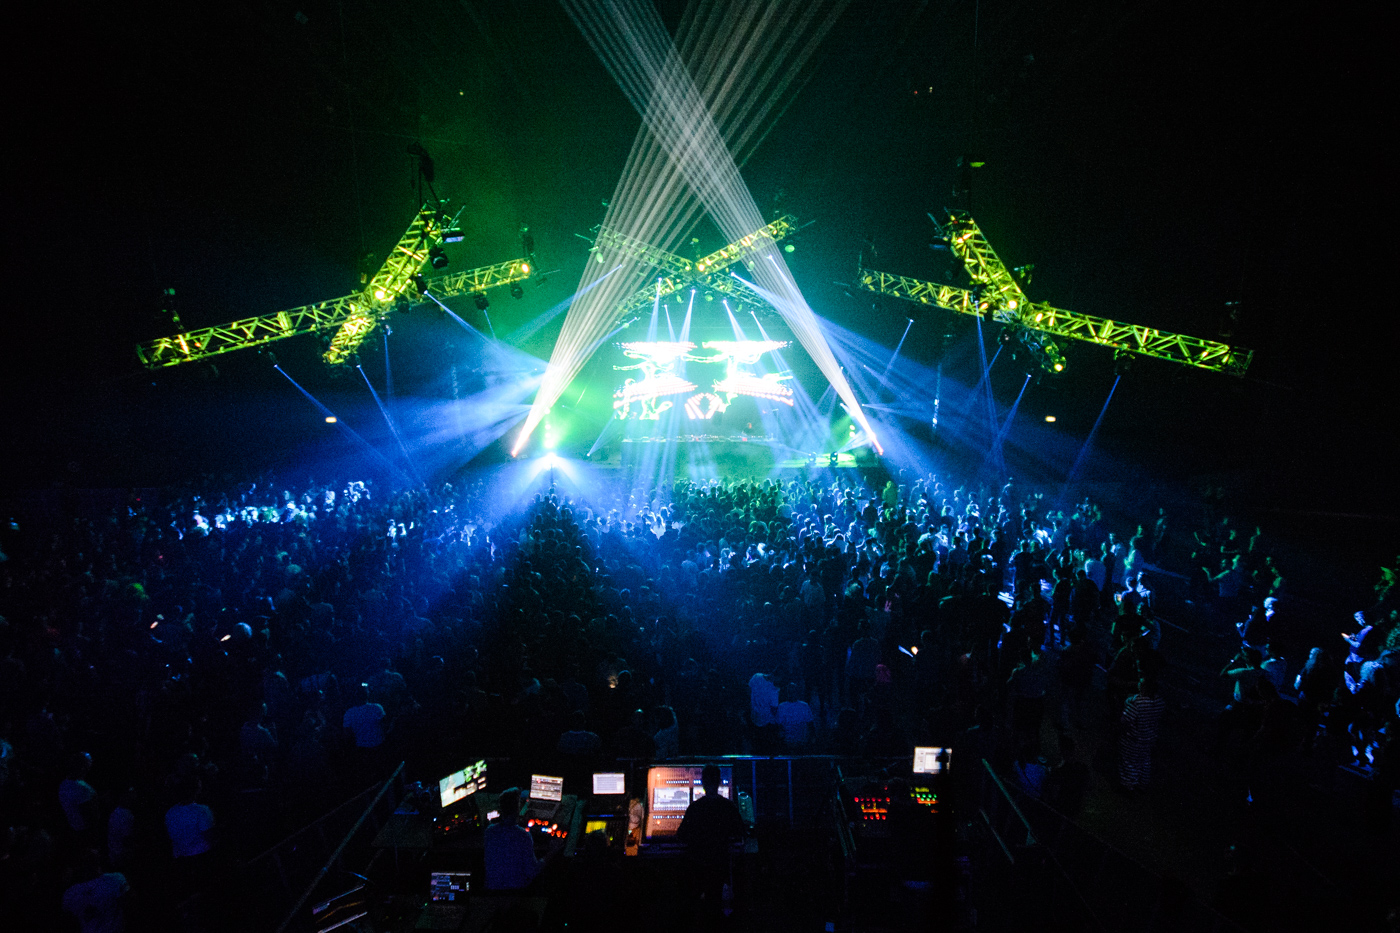 winterparty-at-3arena-dublin-30-10-2016-by-sean-smyth-24-of-53